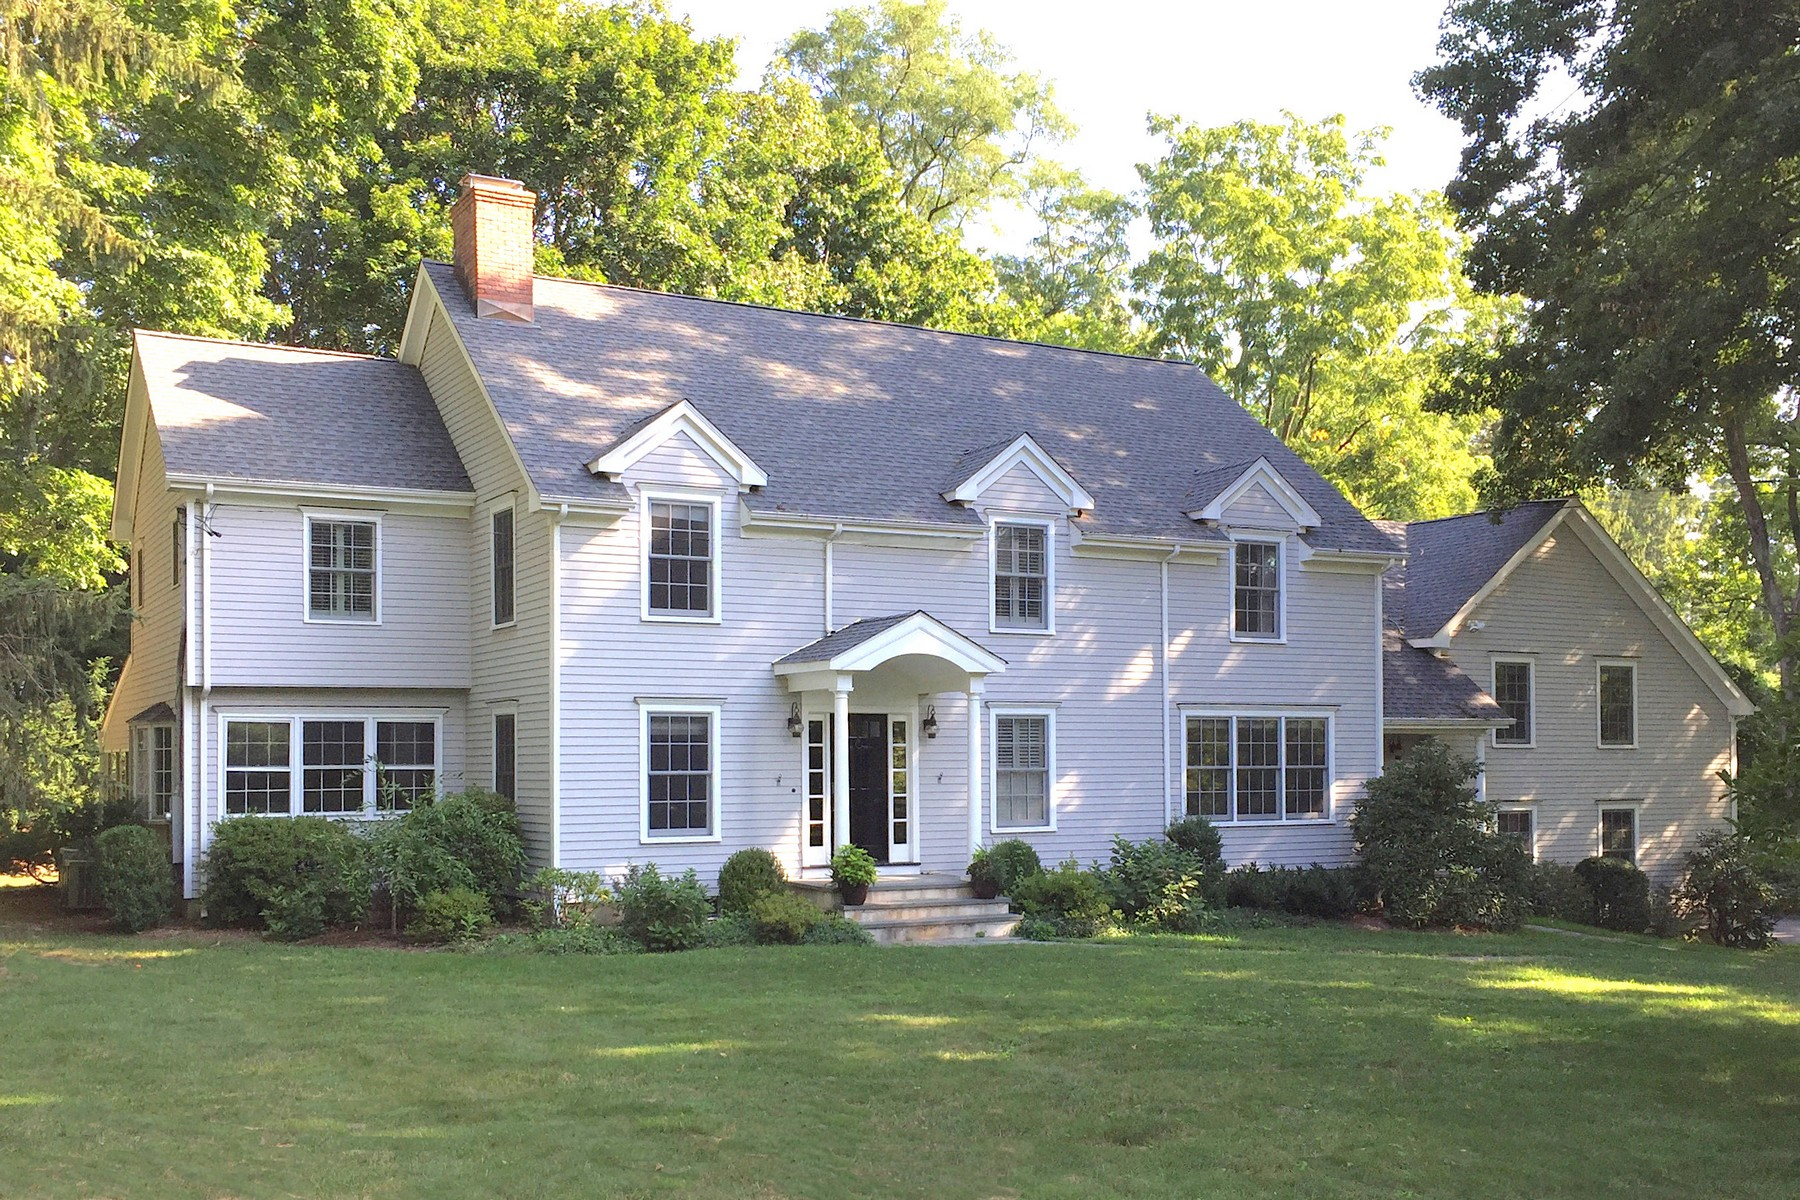 Single Family Home for Sale at Extraordinary Opportunity 181 Middlesex Road Darien, Connecticut, 06820 United States